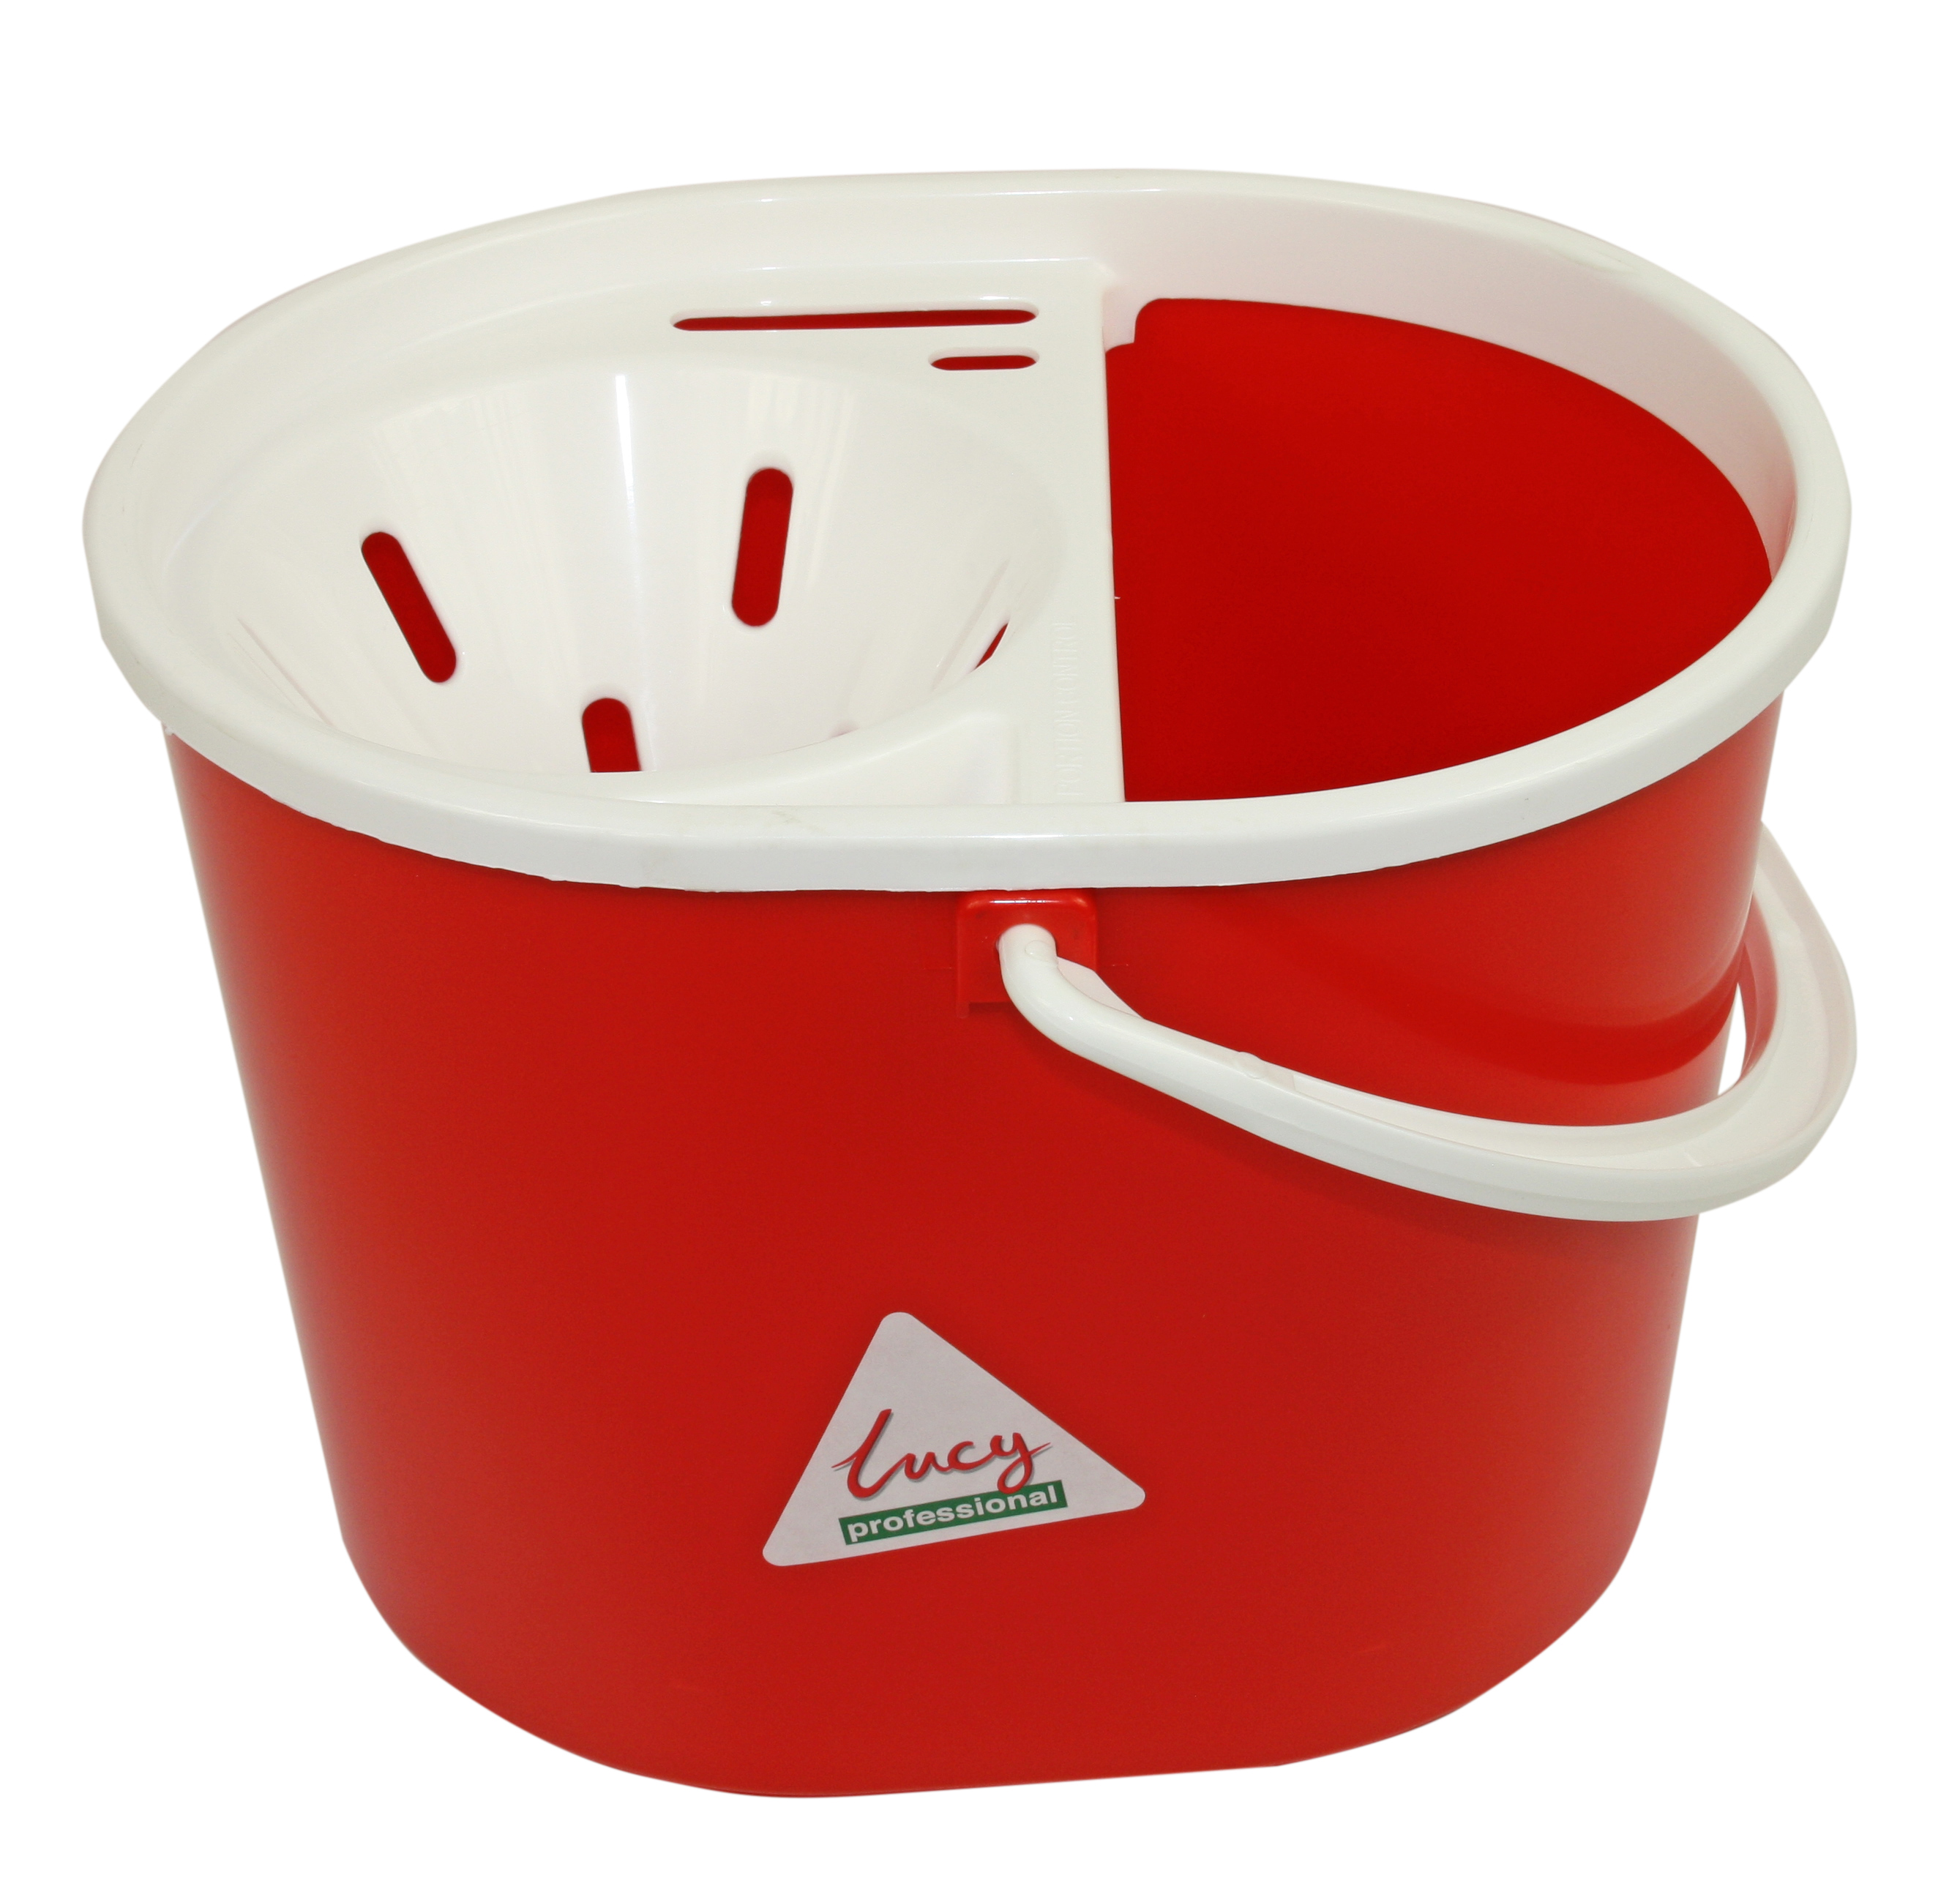 Lucy Oval Mop Bucket Red Cleanwipes Ltd